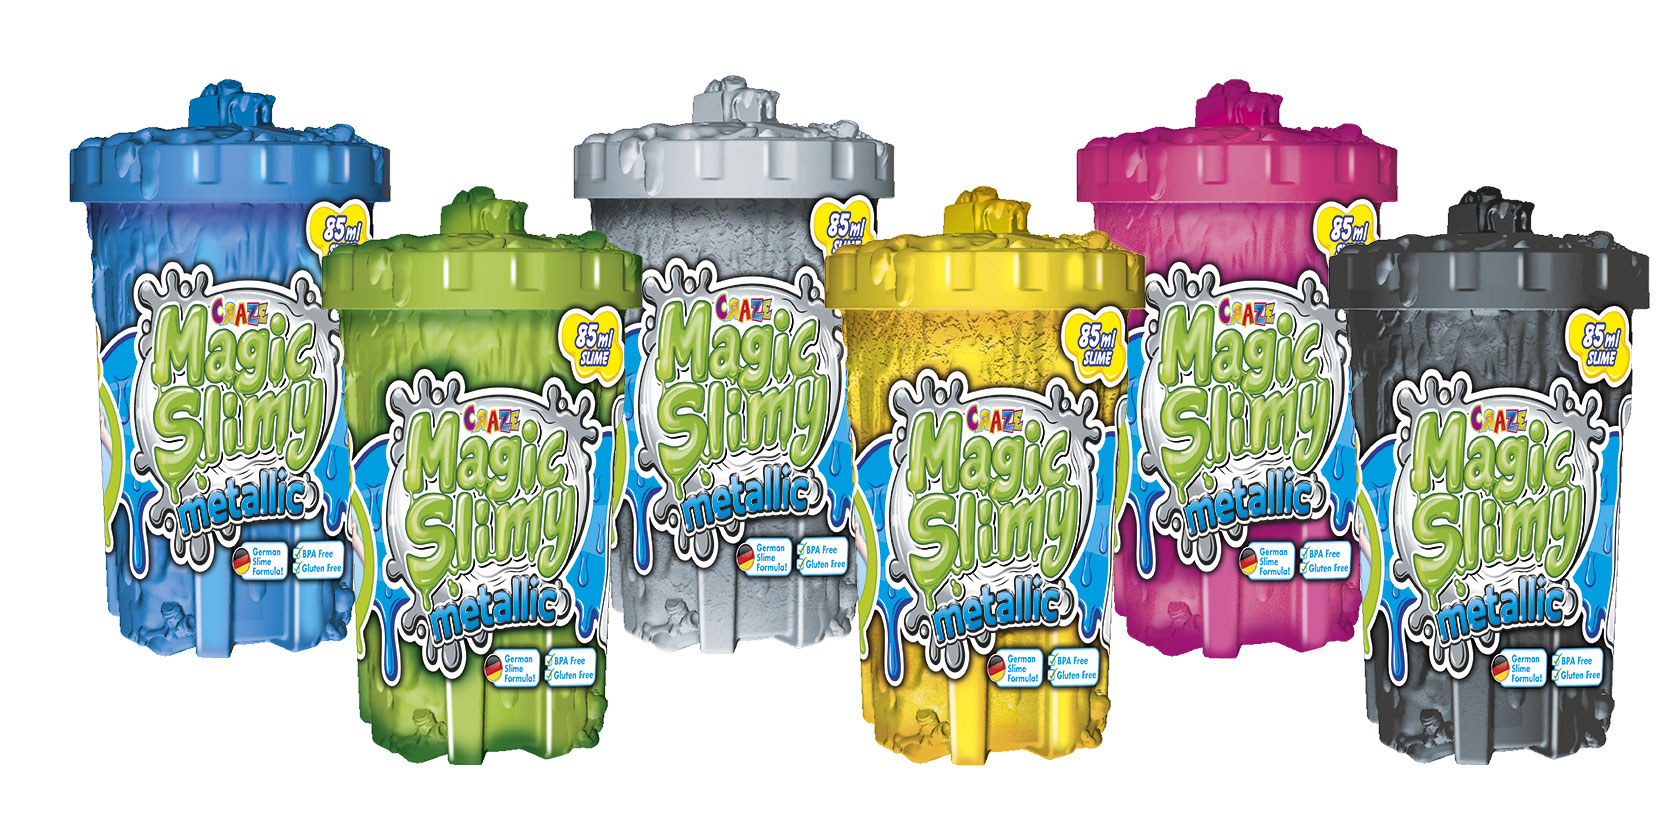 MAGIC SLIME Metallic 85g - 6er Pack